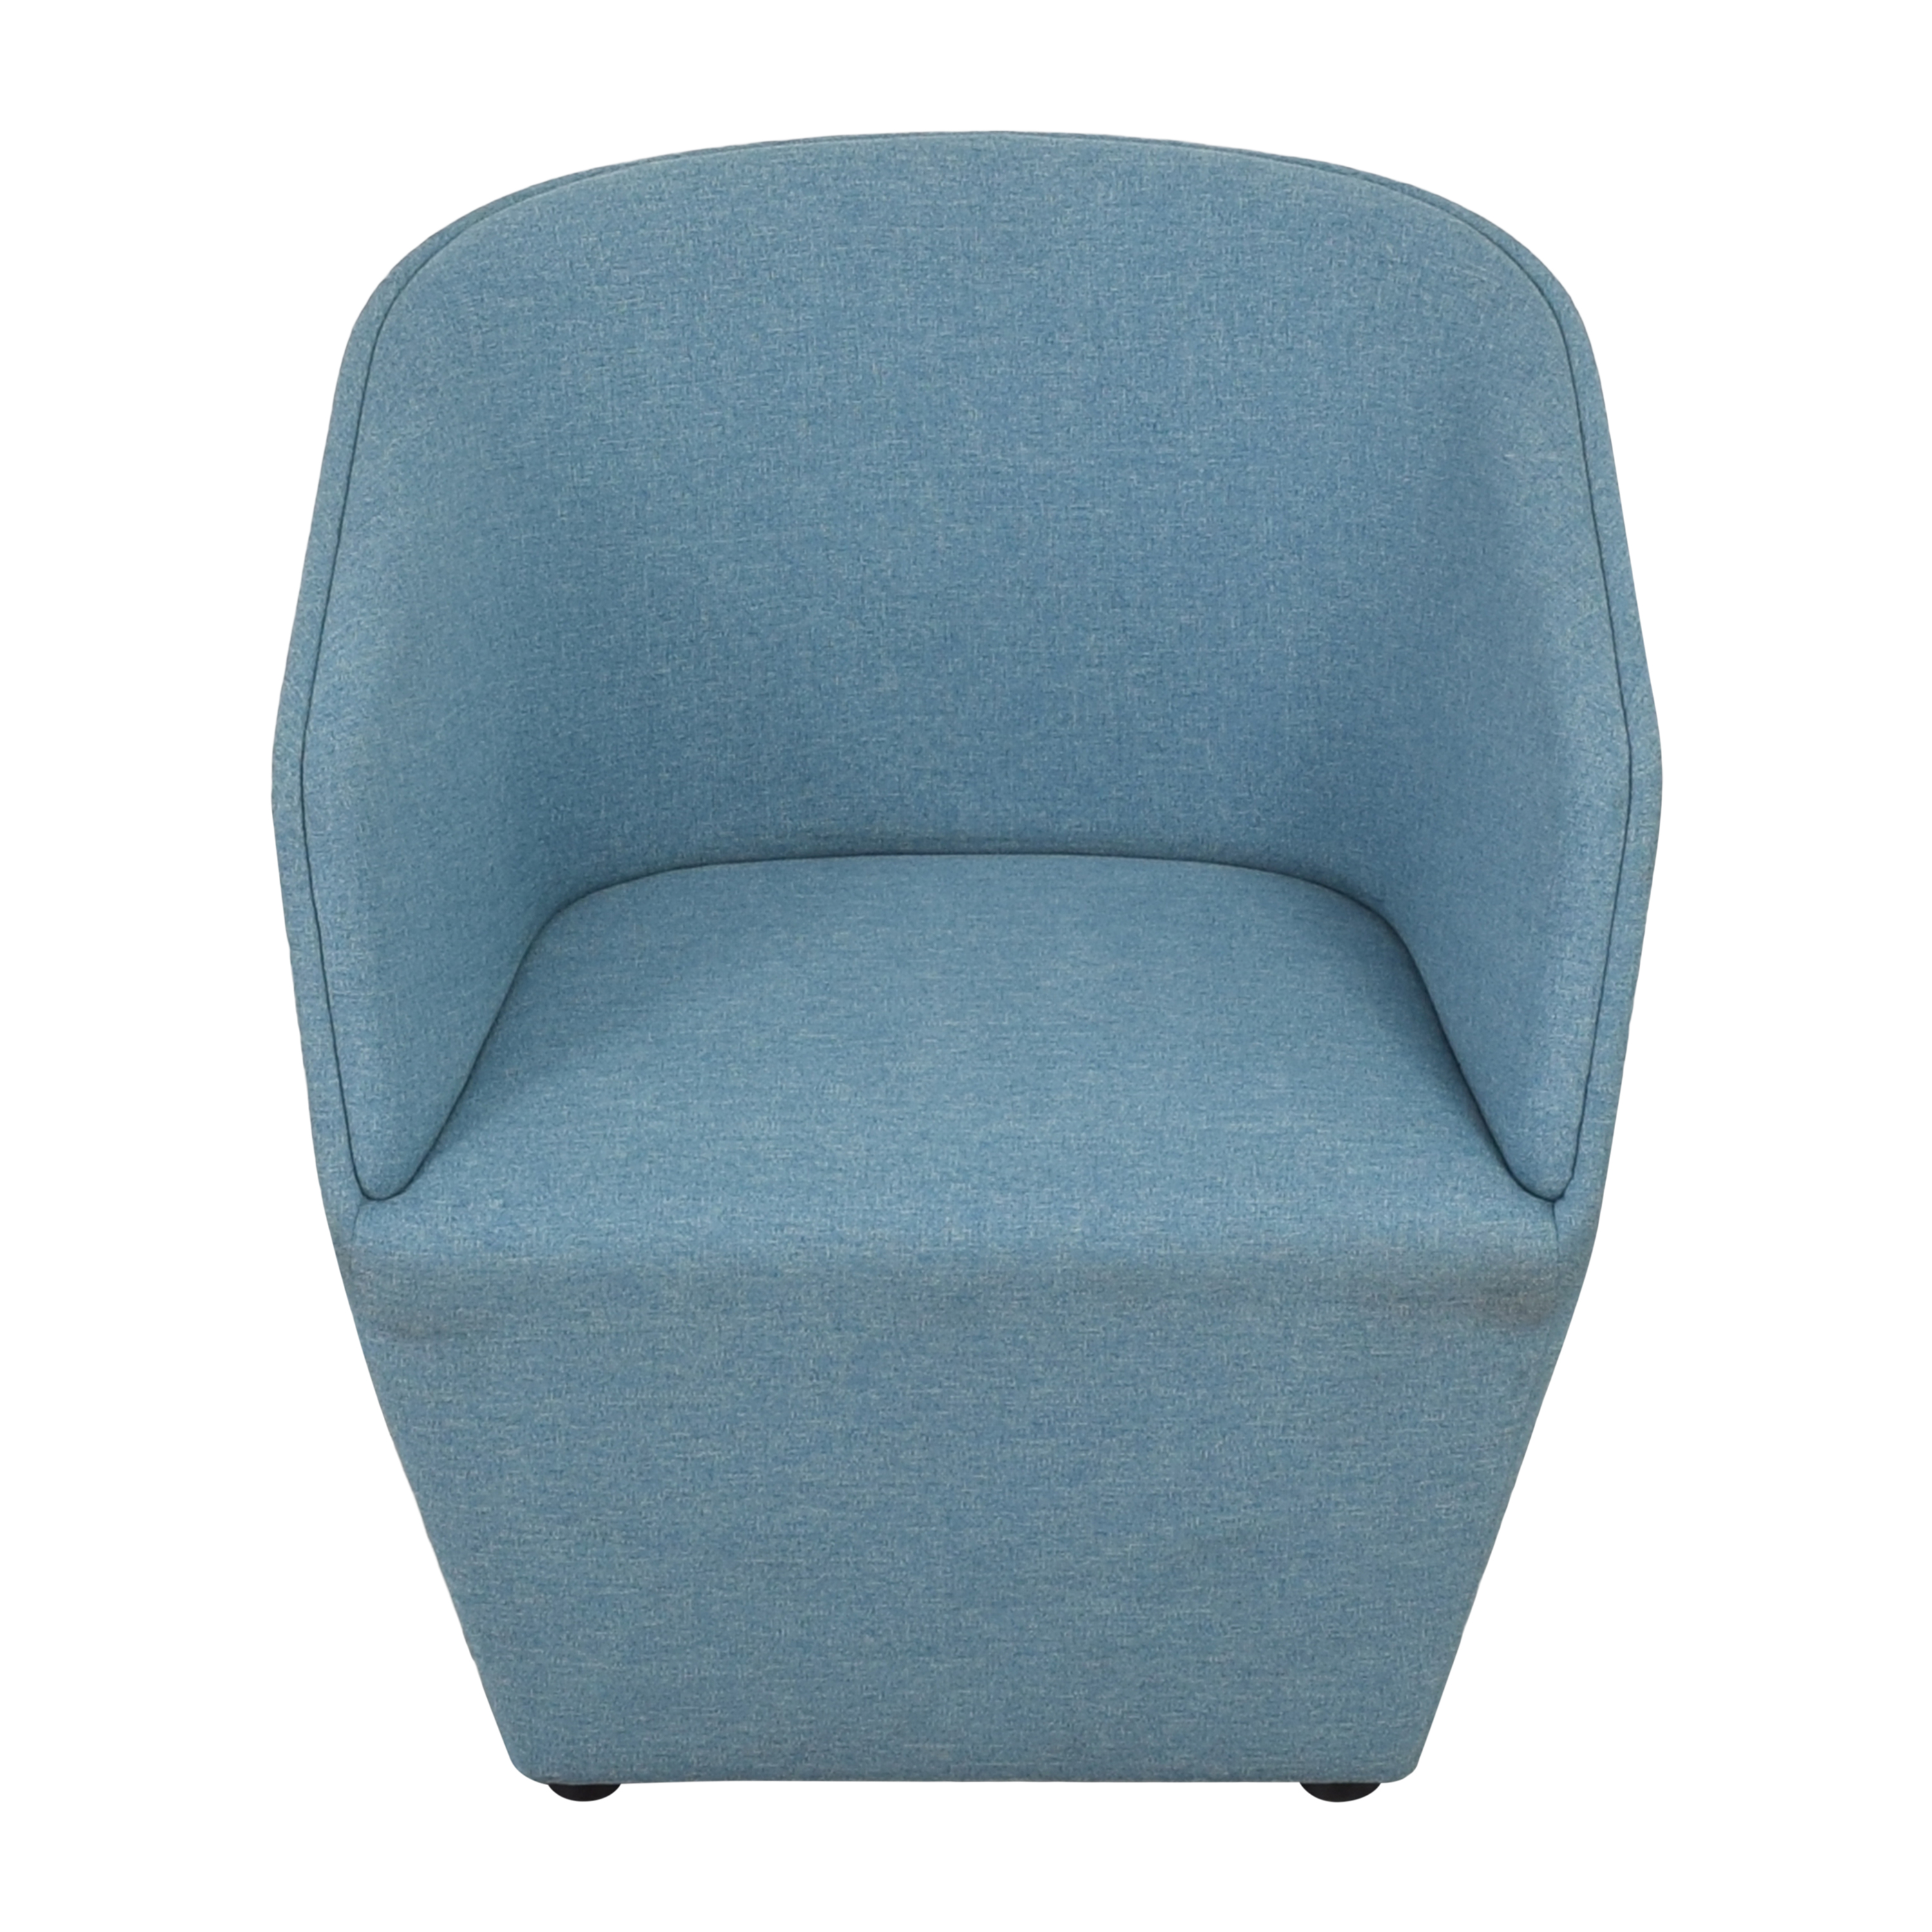 Poppin Poppin Pitch Club Chair price